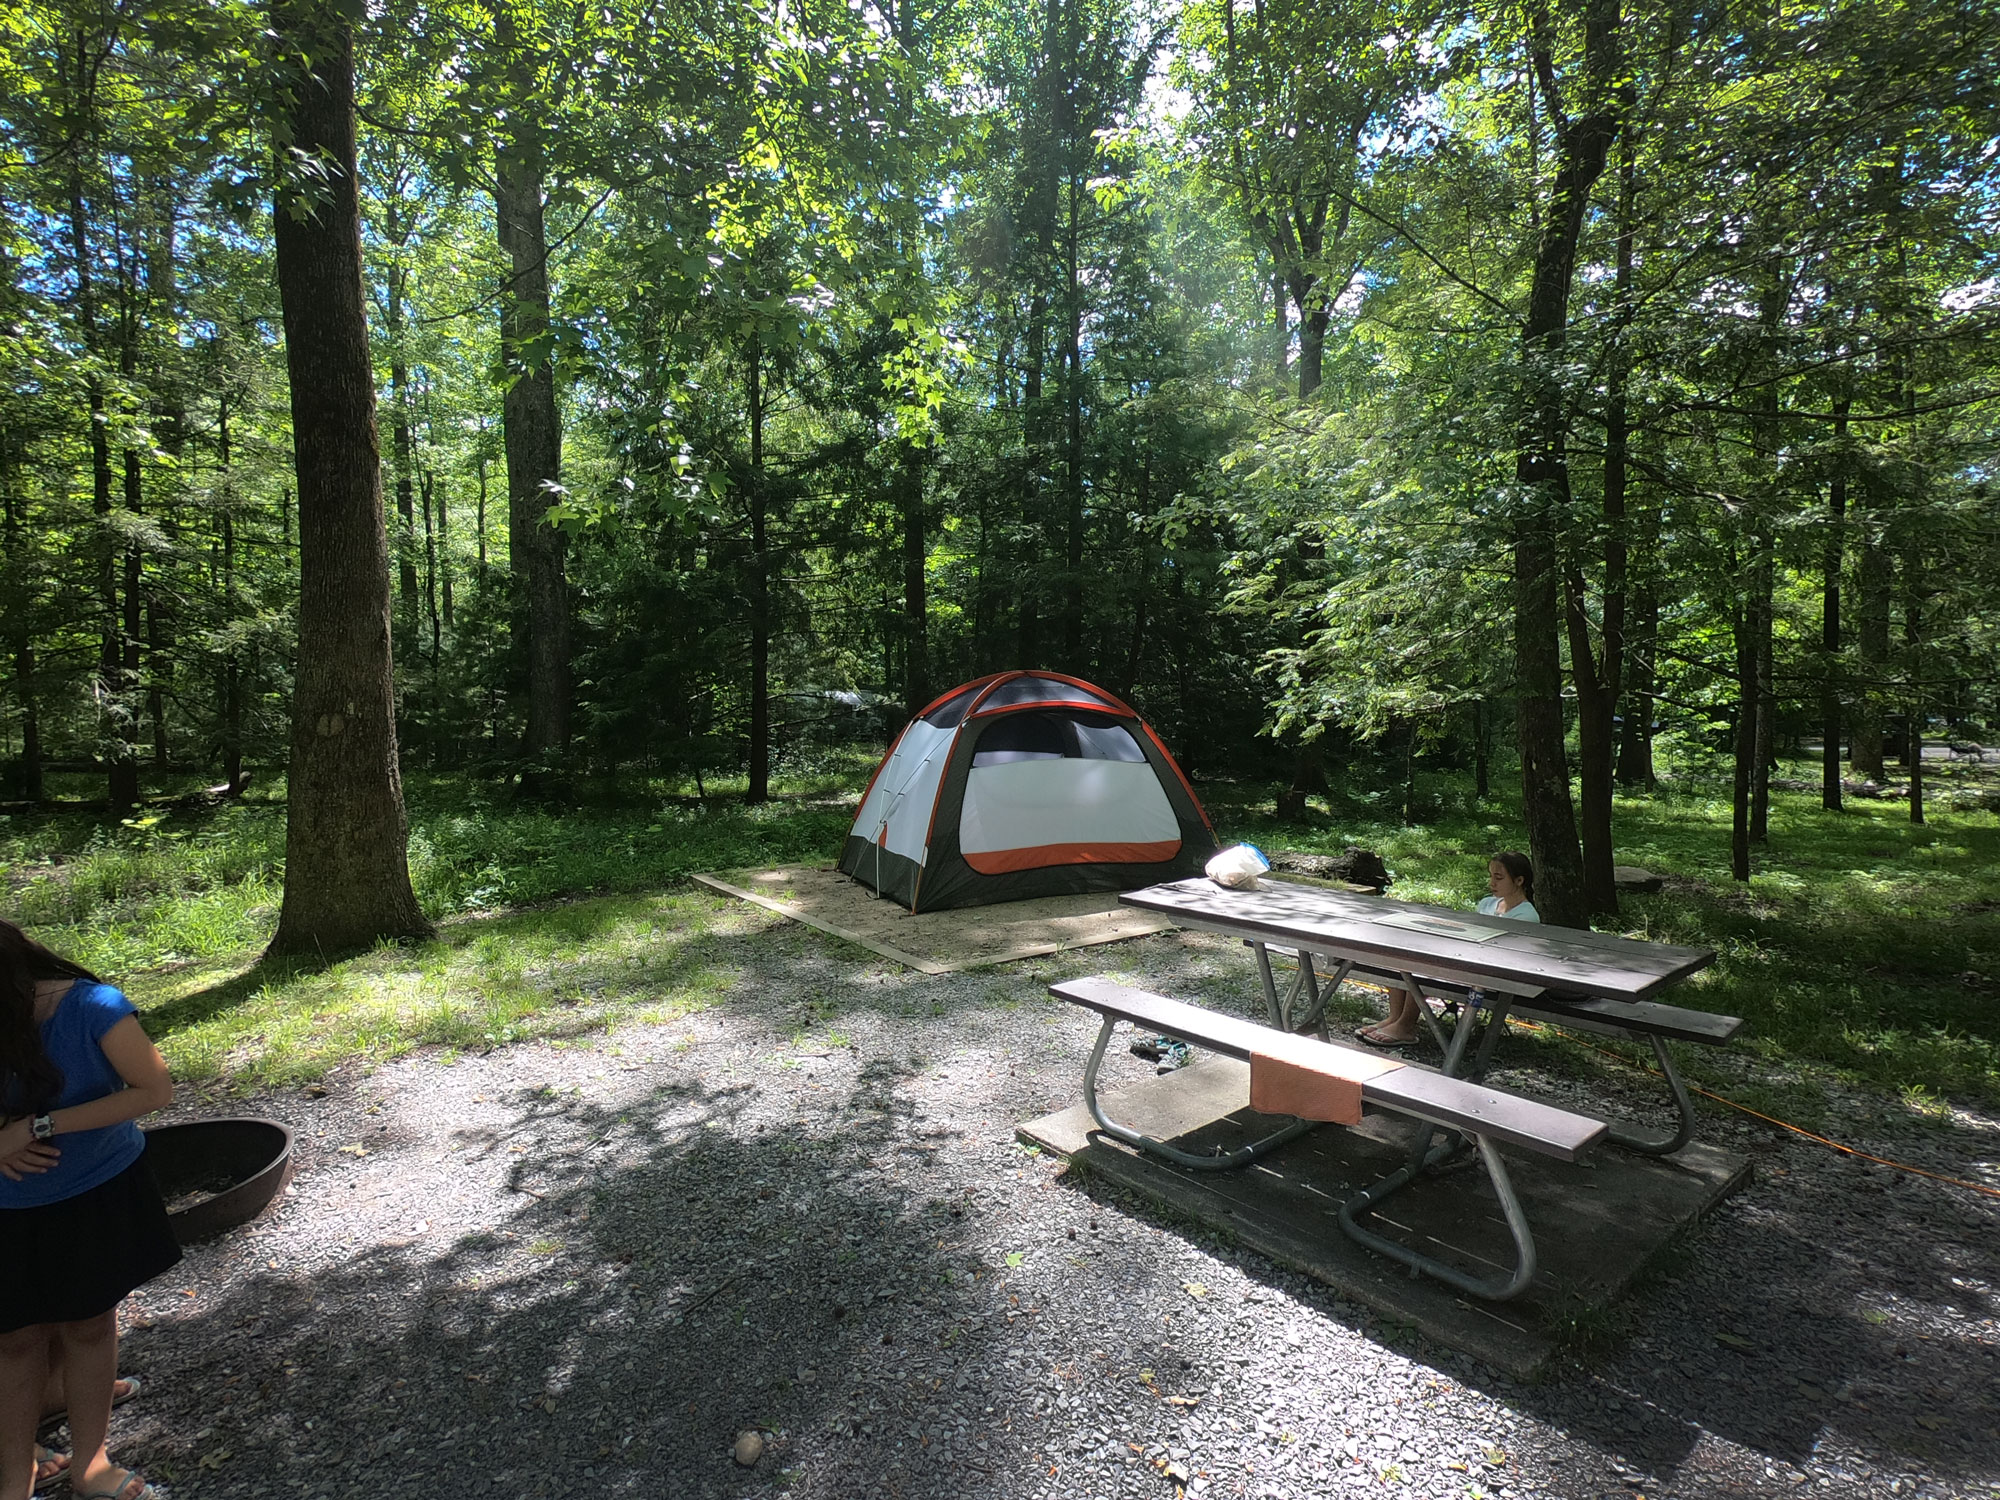 REI tent on camping pad in Cades Cove Campground, Great Smoky Mountains National Park, Tennessee